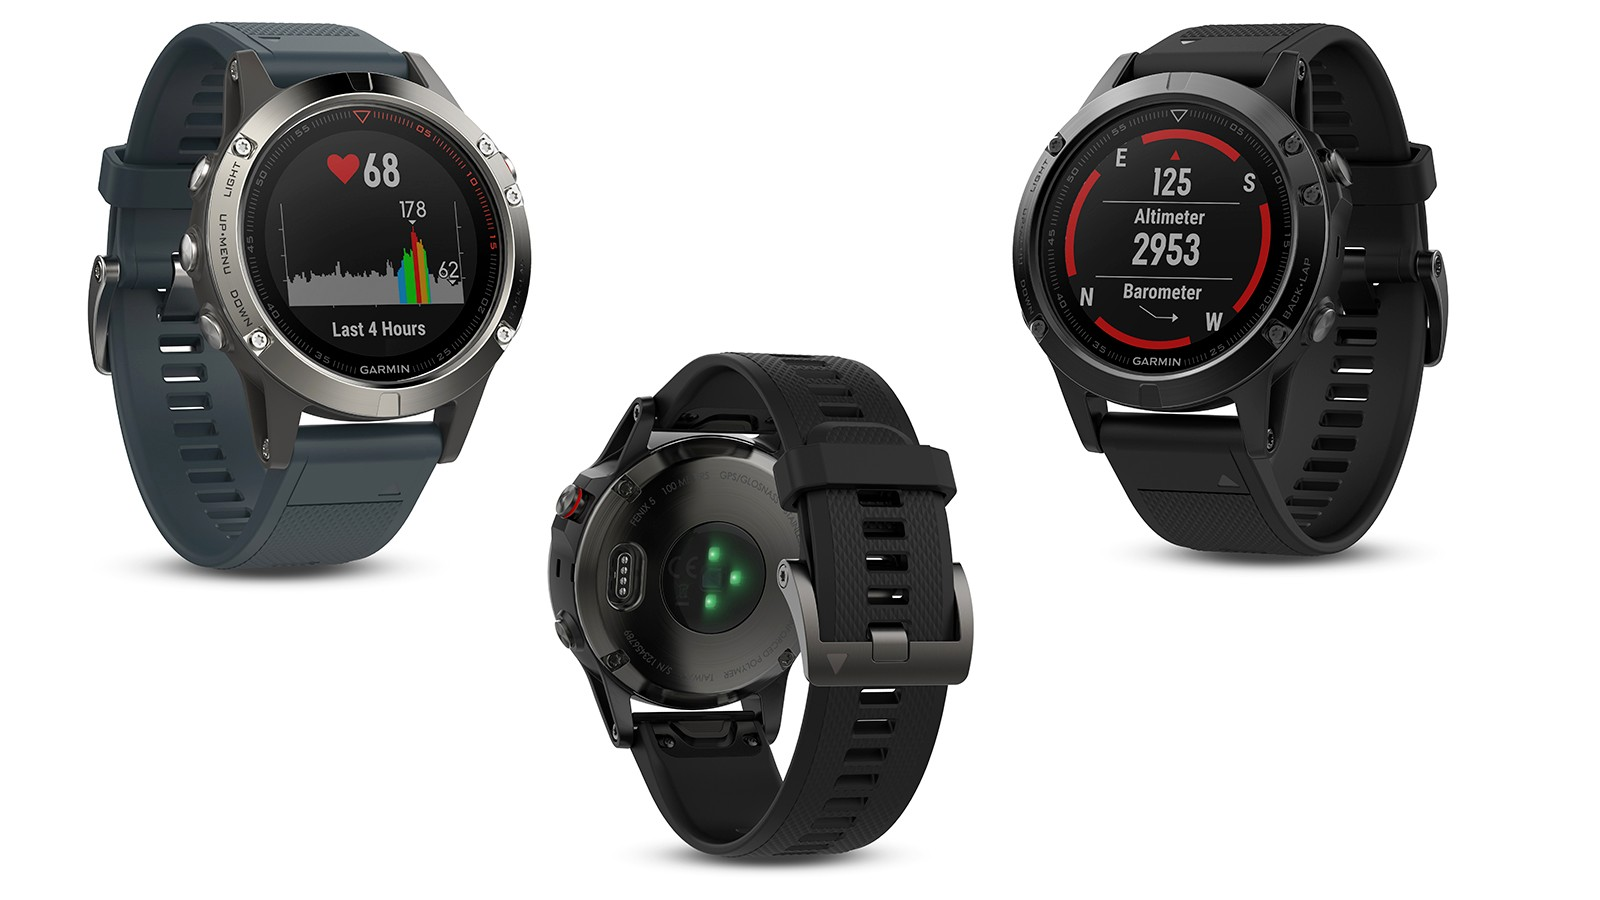 Garmin announces Fenix 5 and new apps from Trek, Gu and more